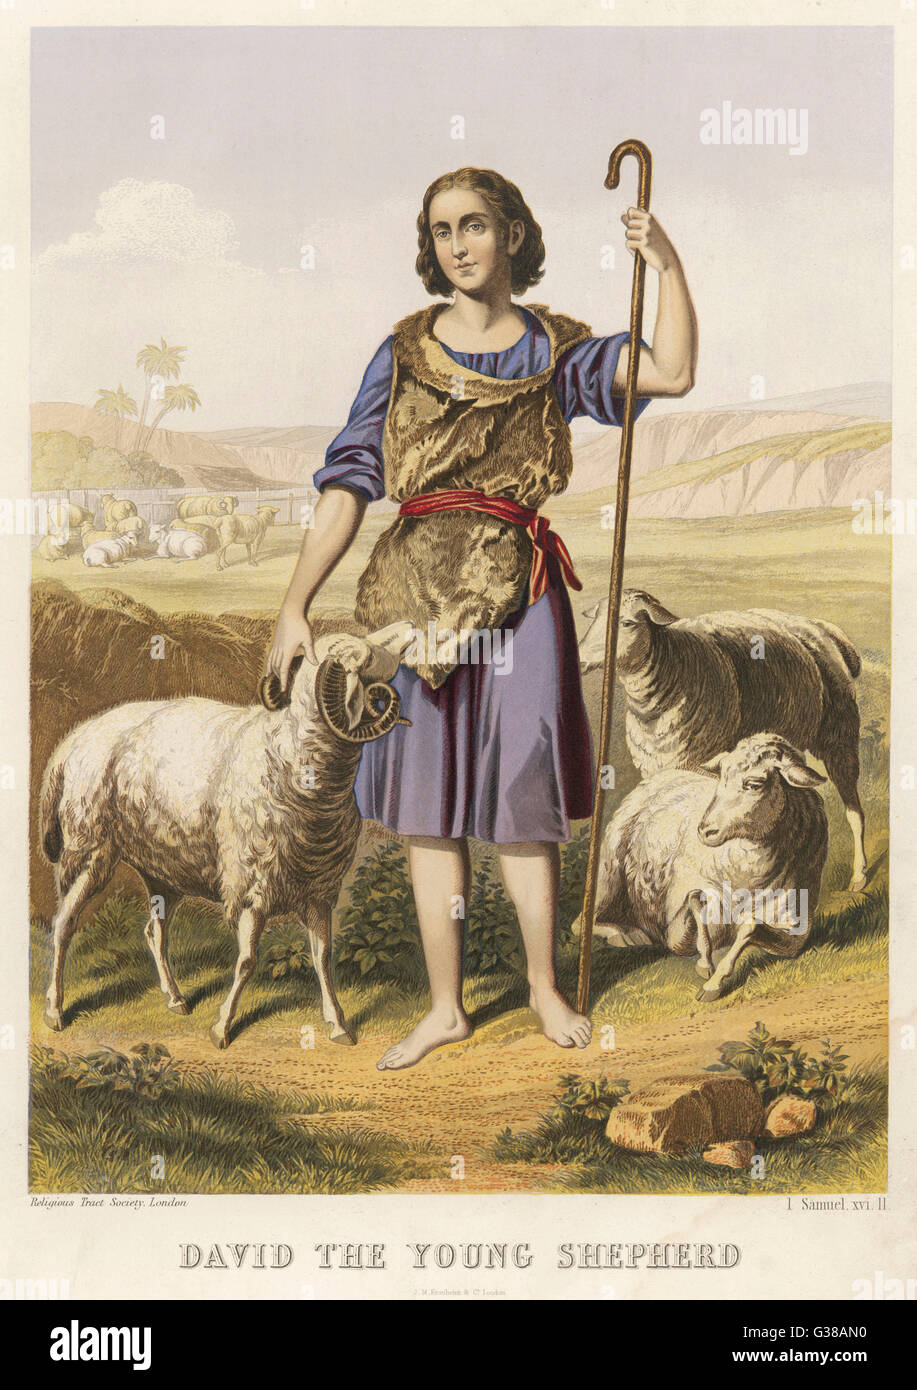 depicted as a shepherd - Stock Image